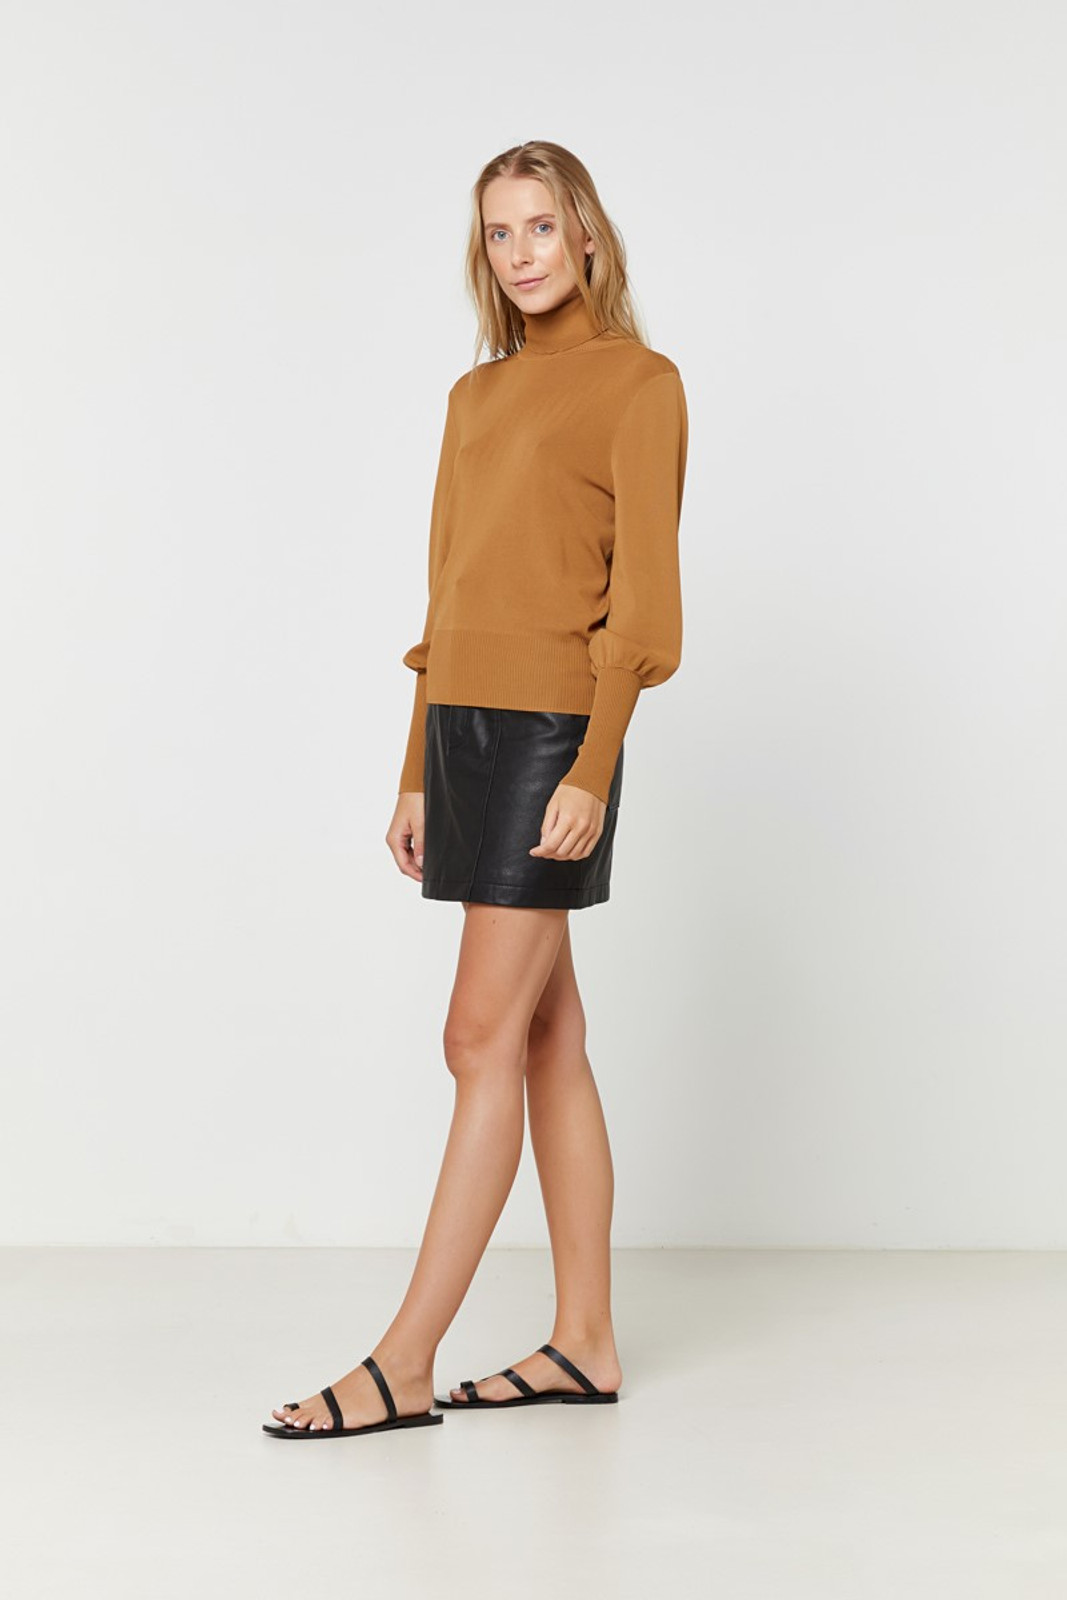 Elka Collective Jacy Knit Yellow  2